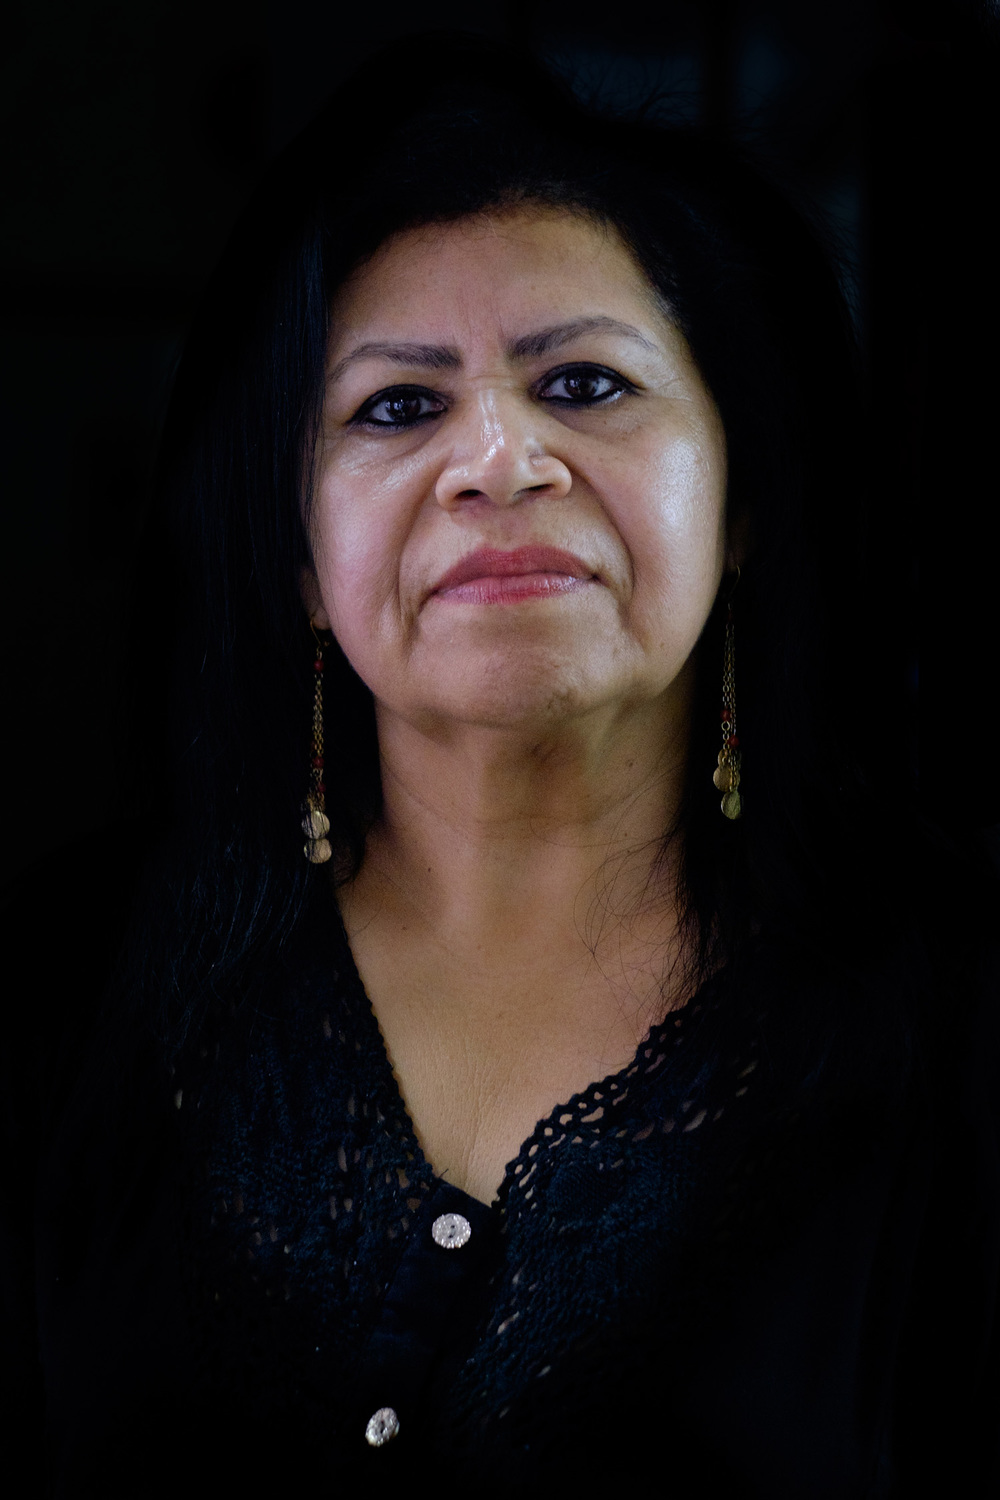 The owner of a pub where the local Baptist Church pastors and Blanca are meeting sex-workers to empower them through Gospel's reading